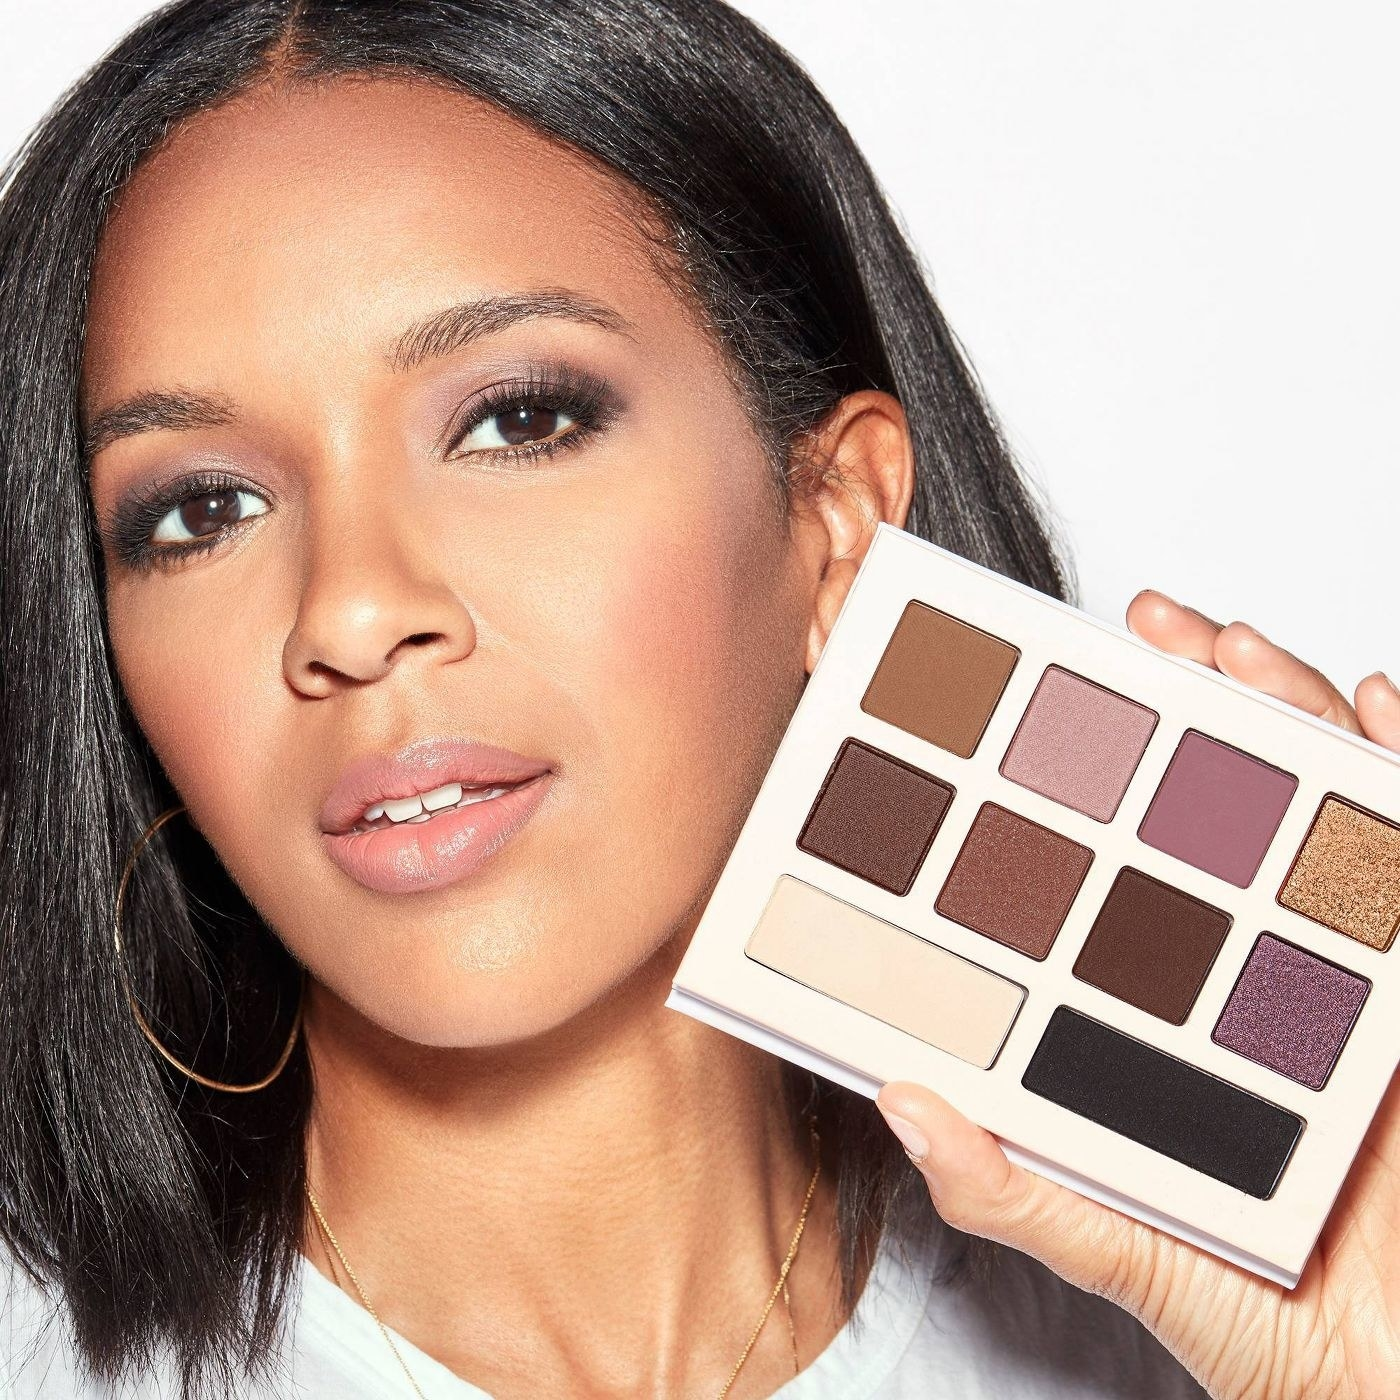 A model holding an eyeshadow palette